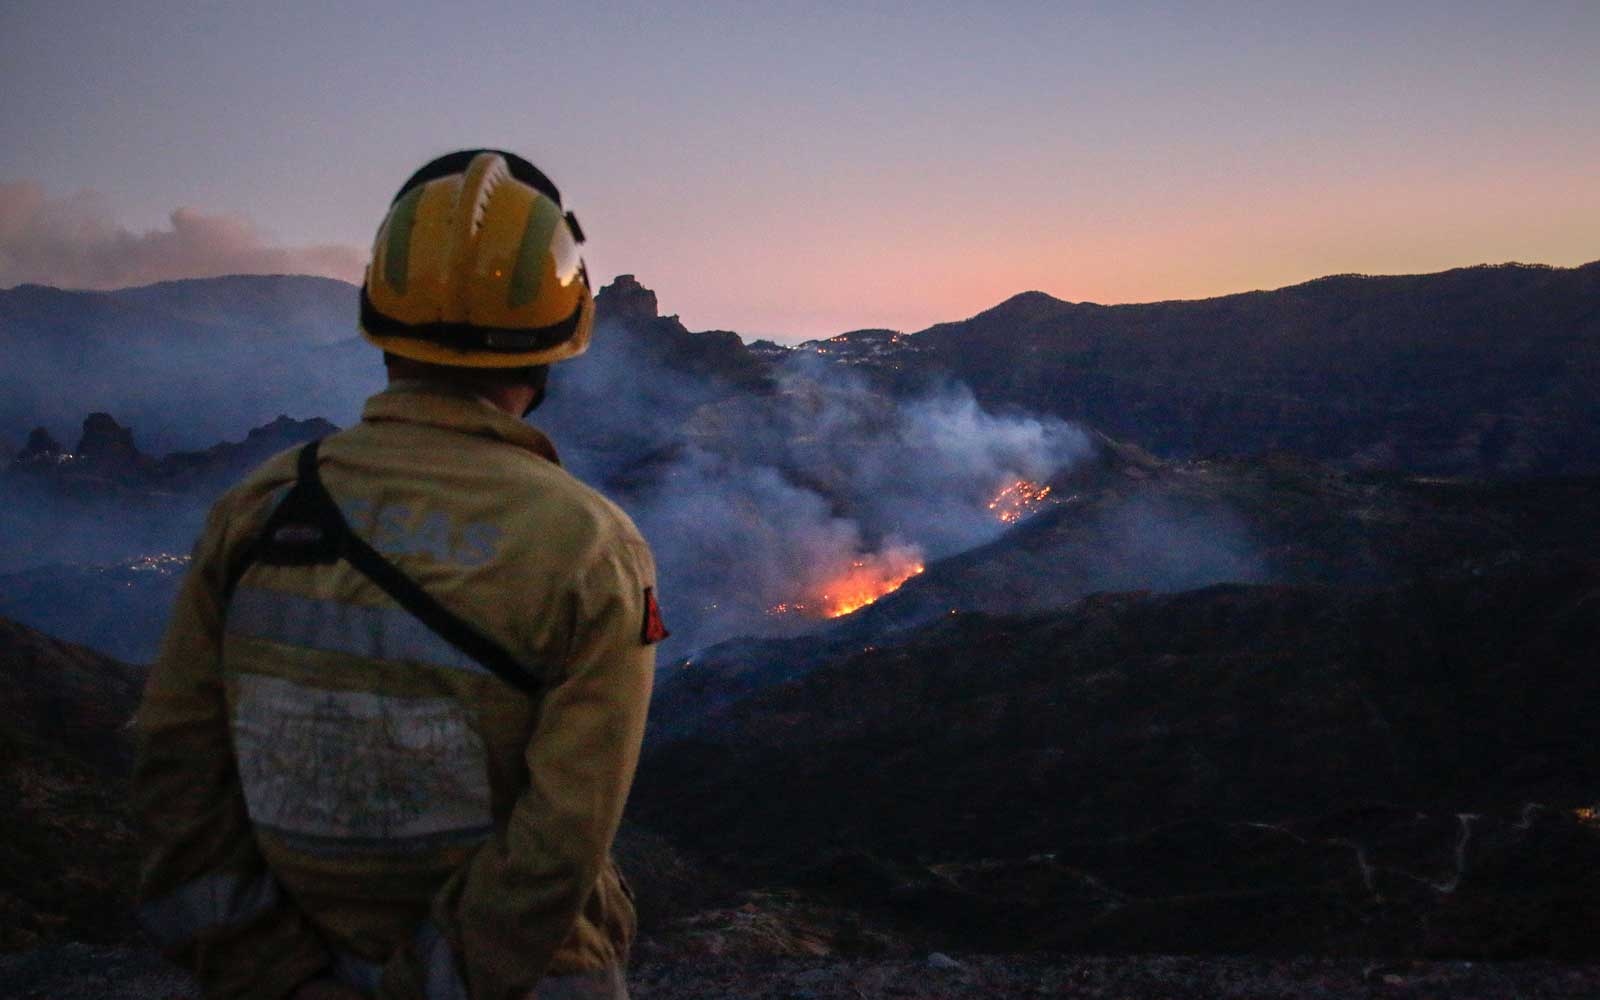 Canary Islands: 9,000 People Flee Gran Canaria During Second Major Wildfire This Month